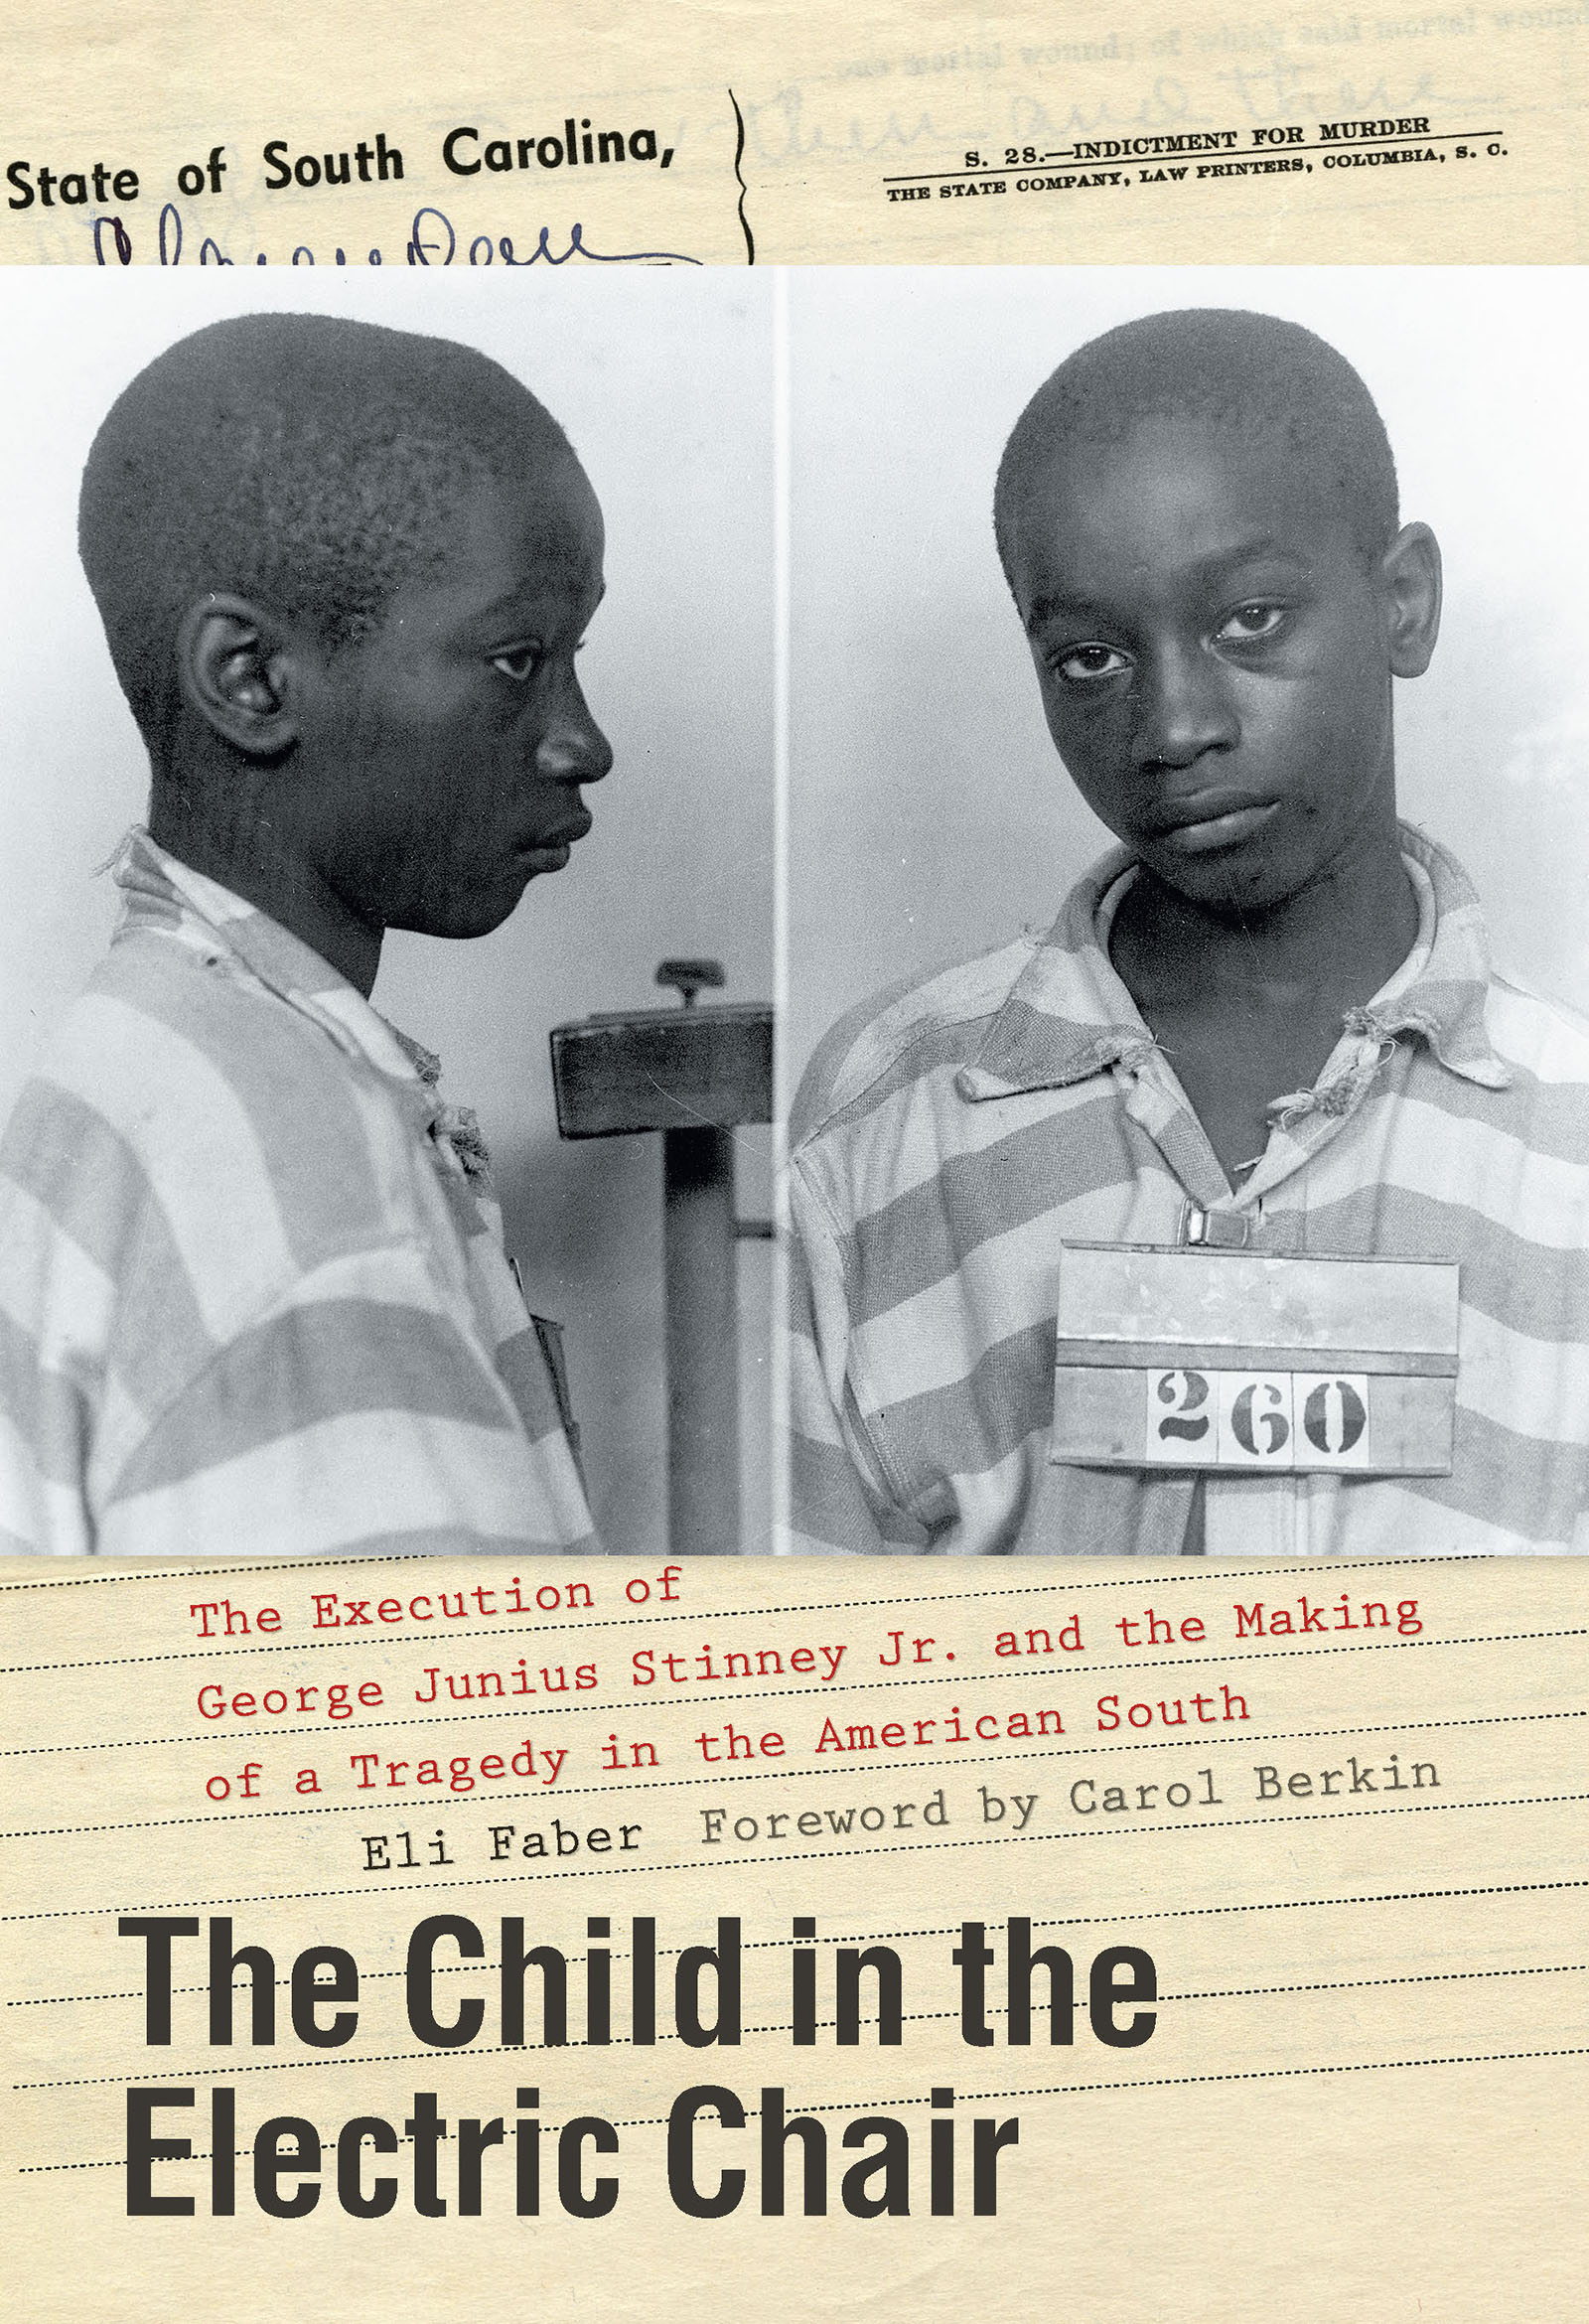 book: he Child in the Electric Chair : the Execution of George Junius Stinney Jr. and the Making of a Tragedy in the American South